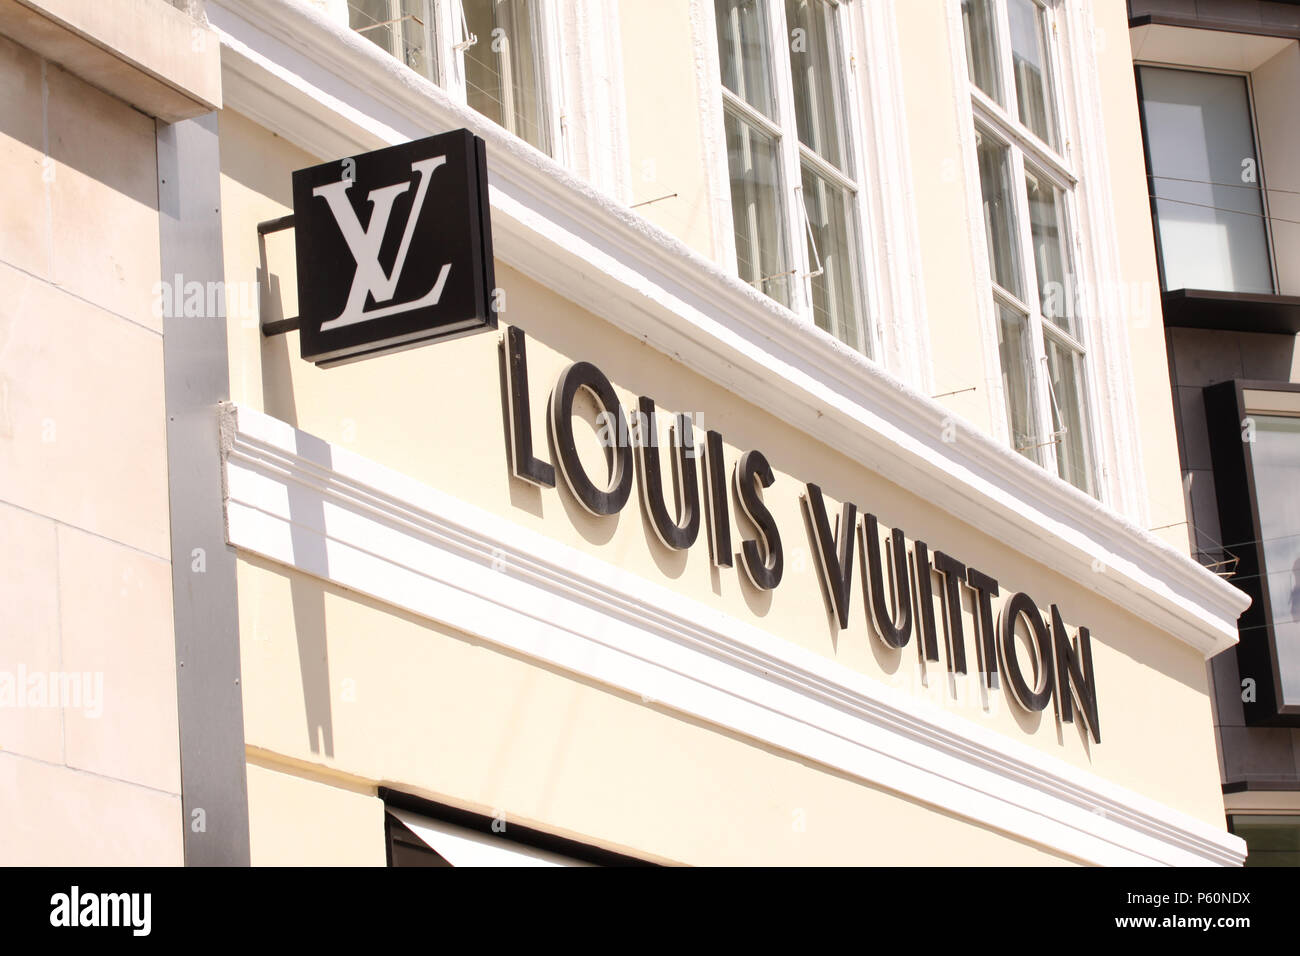 louis vuitton logo stock photos louis vuitton logo stock images